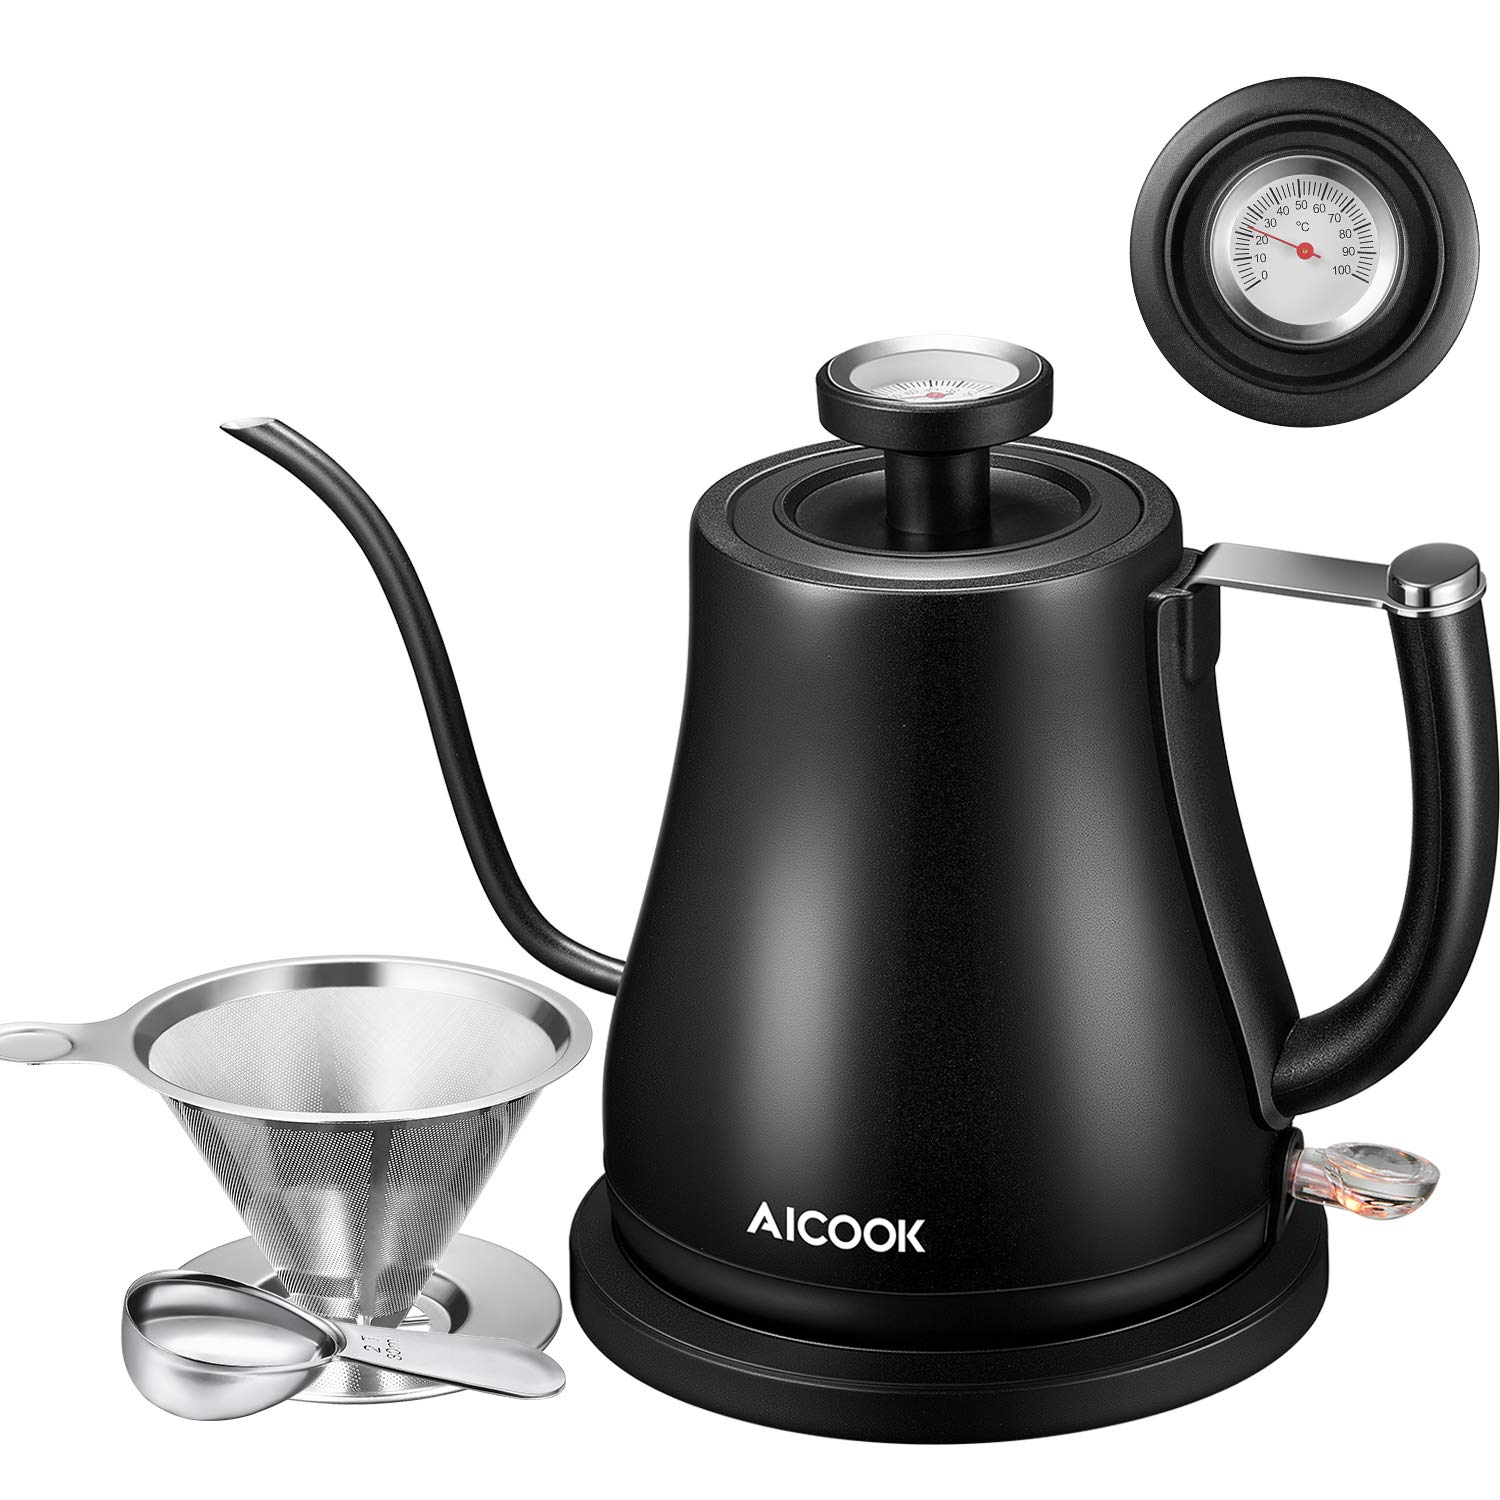 Electric Kettle, Aicook Gooseneck Kettle for Coffee or Tea, Pour Over Coffee Kettle with Thermometer, Stainless Steel Coffee Teapots Kettle with Coffee Filter and Spoon, Auto Shut-Off, 1000W, 800 mL